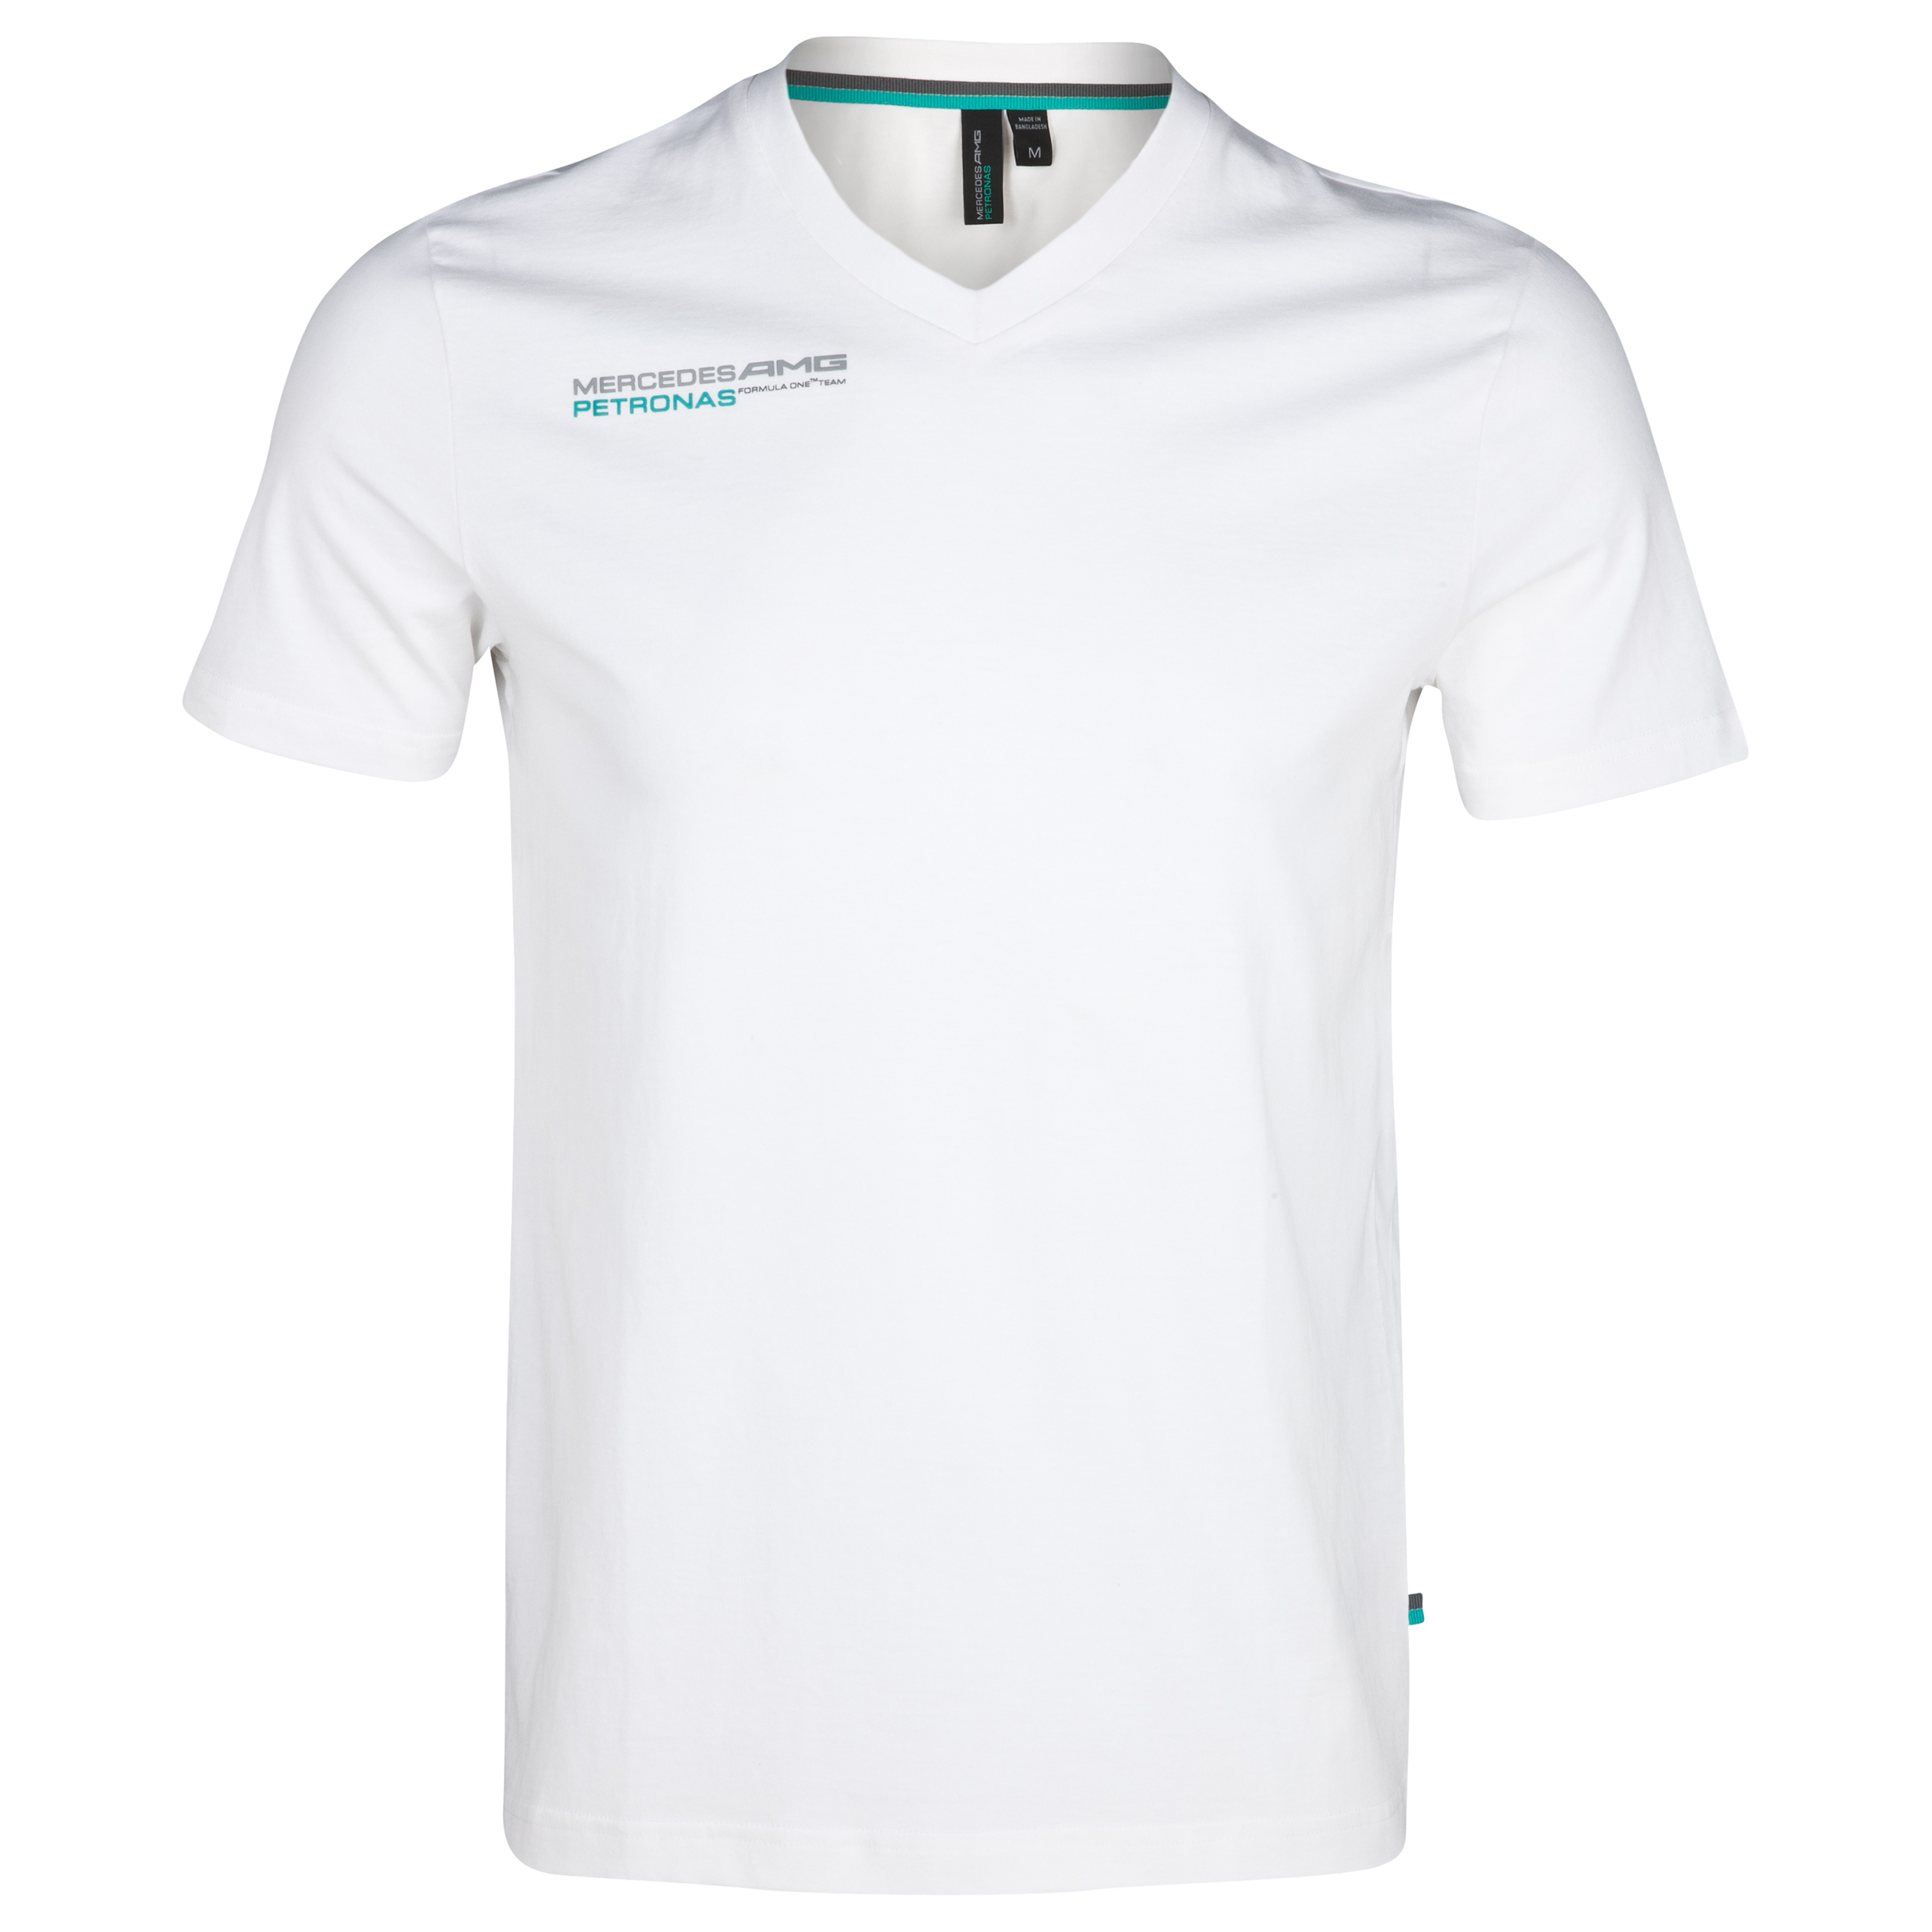 Mercedes AMG Petronas 2013 Fan T-Shirt - White